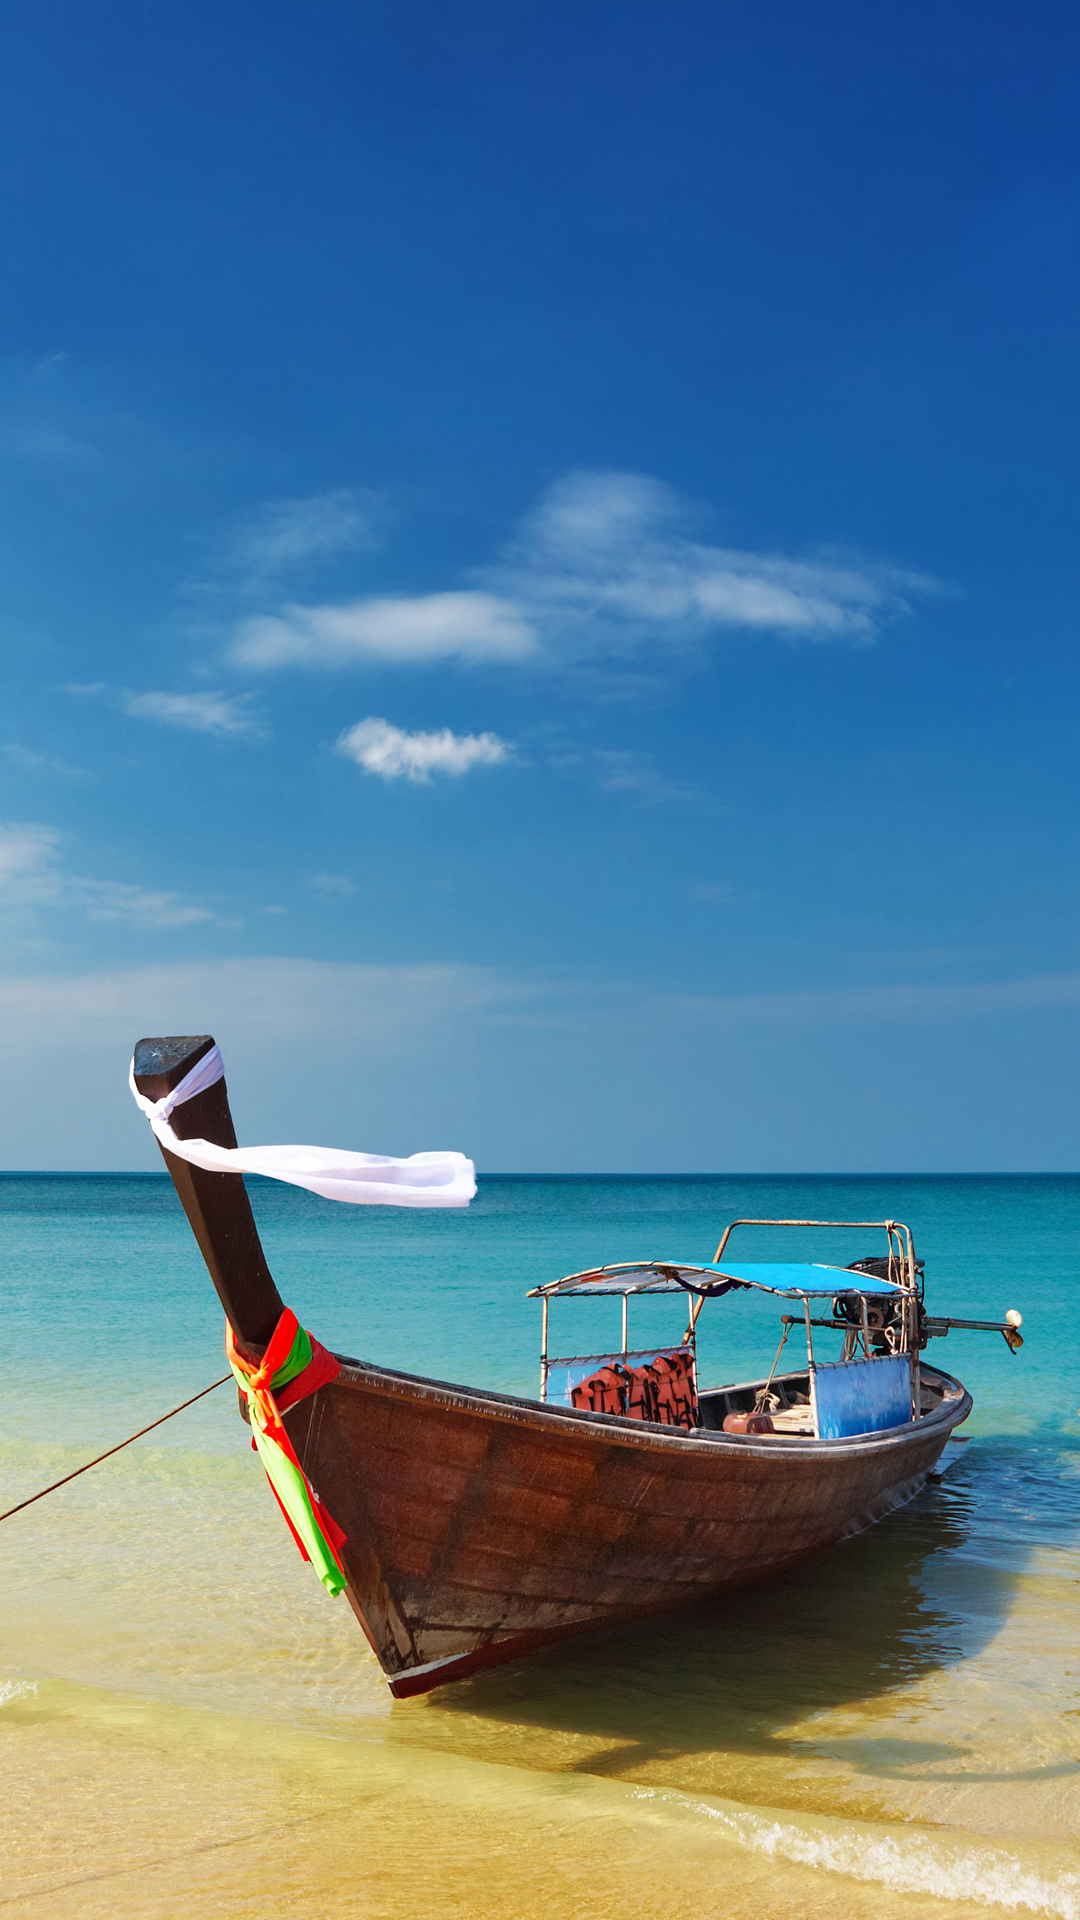 thailand-beach-shore-boat-android-wallpaper